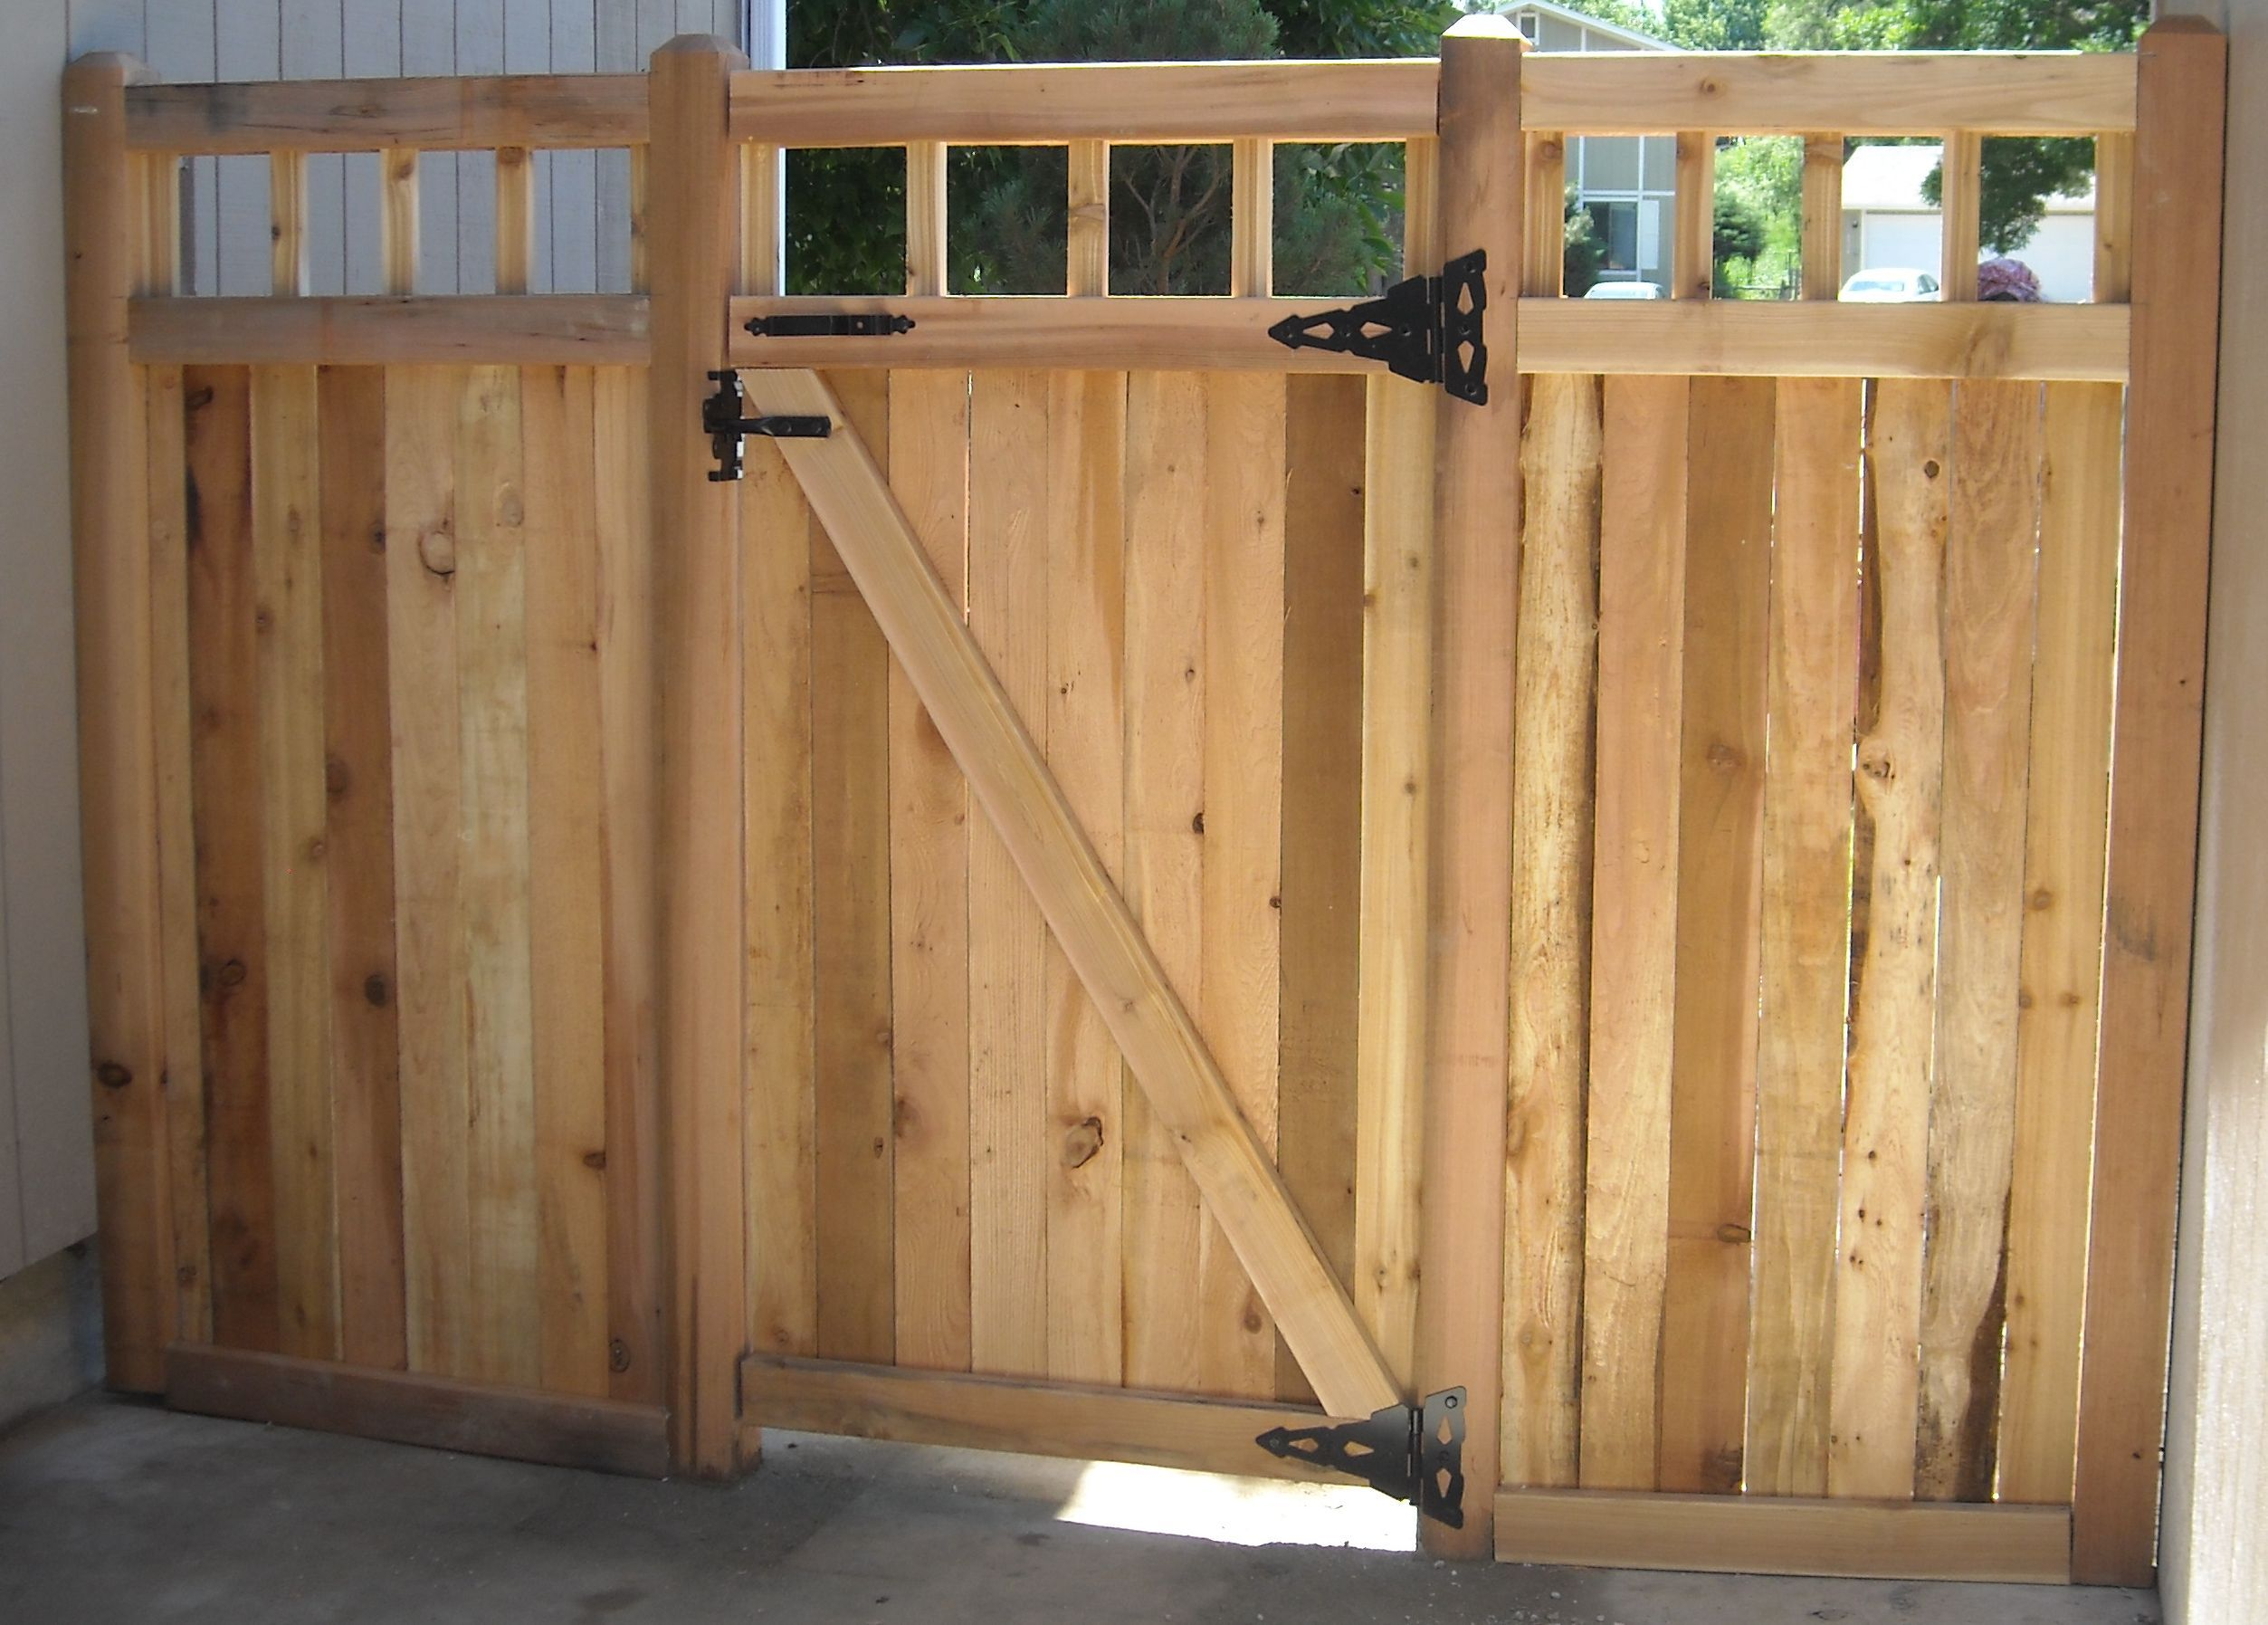 How to repair/build a fence and gate. complete tutorial with ...